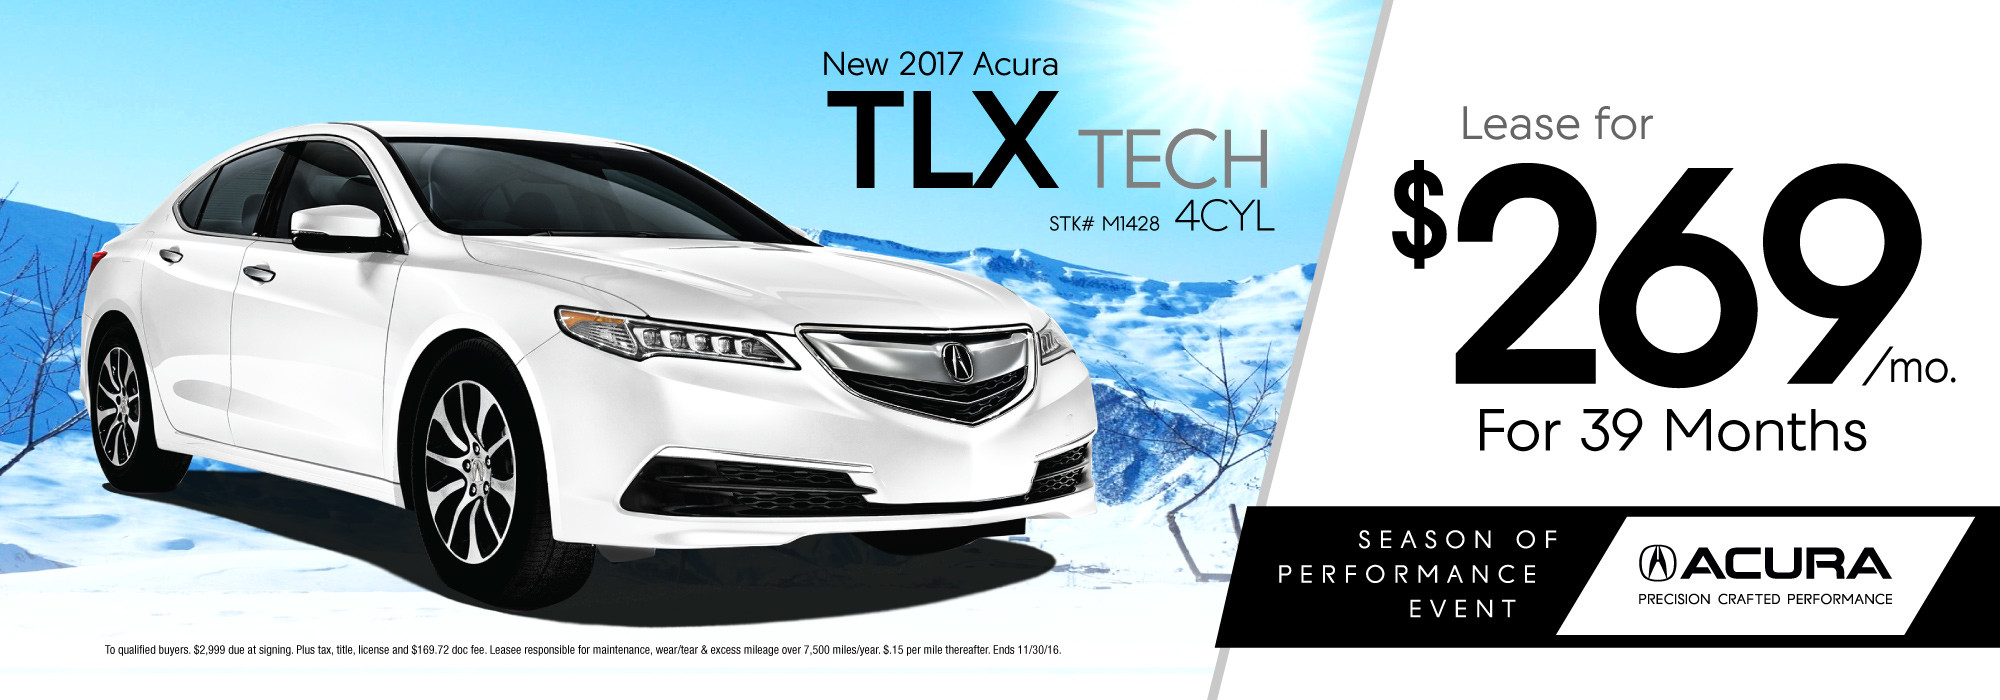 Lease Specials McGrath Acura Of Morton Grove - Lease acura